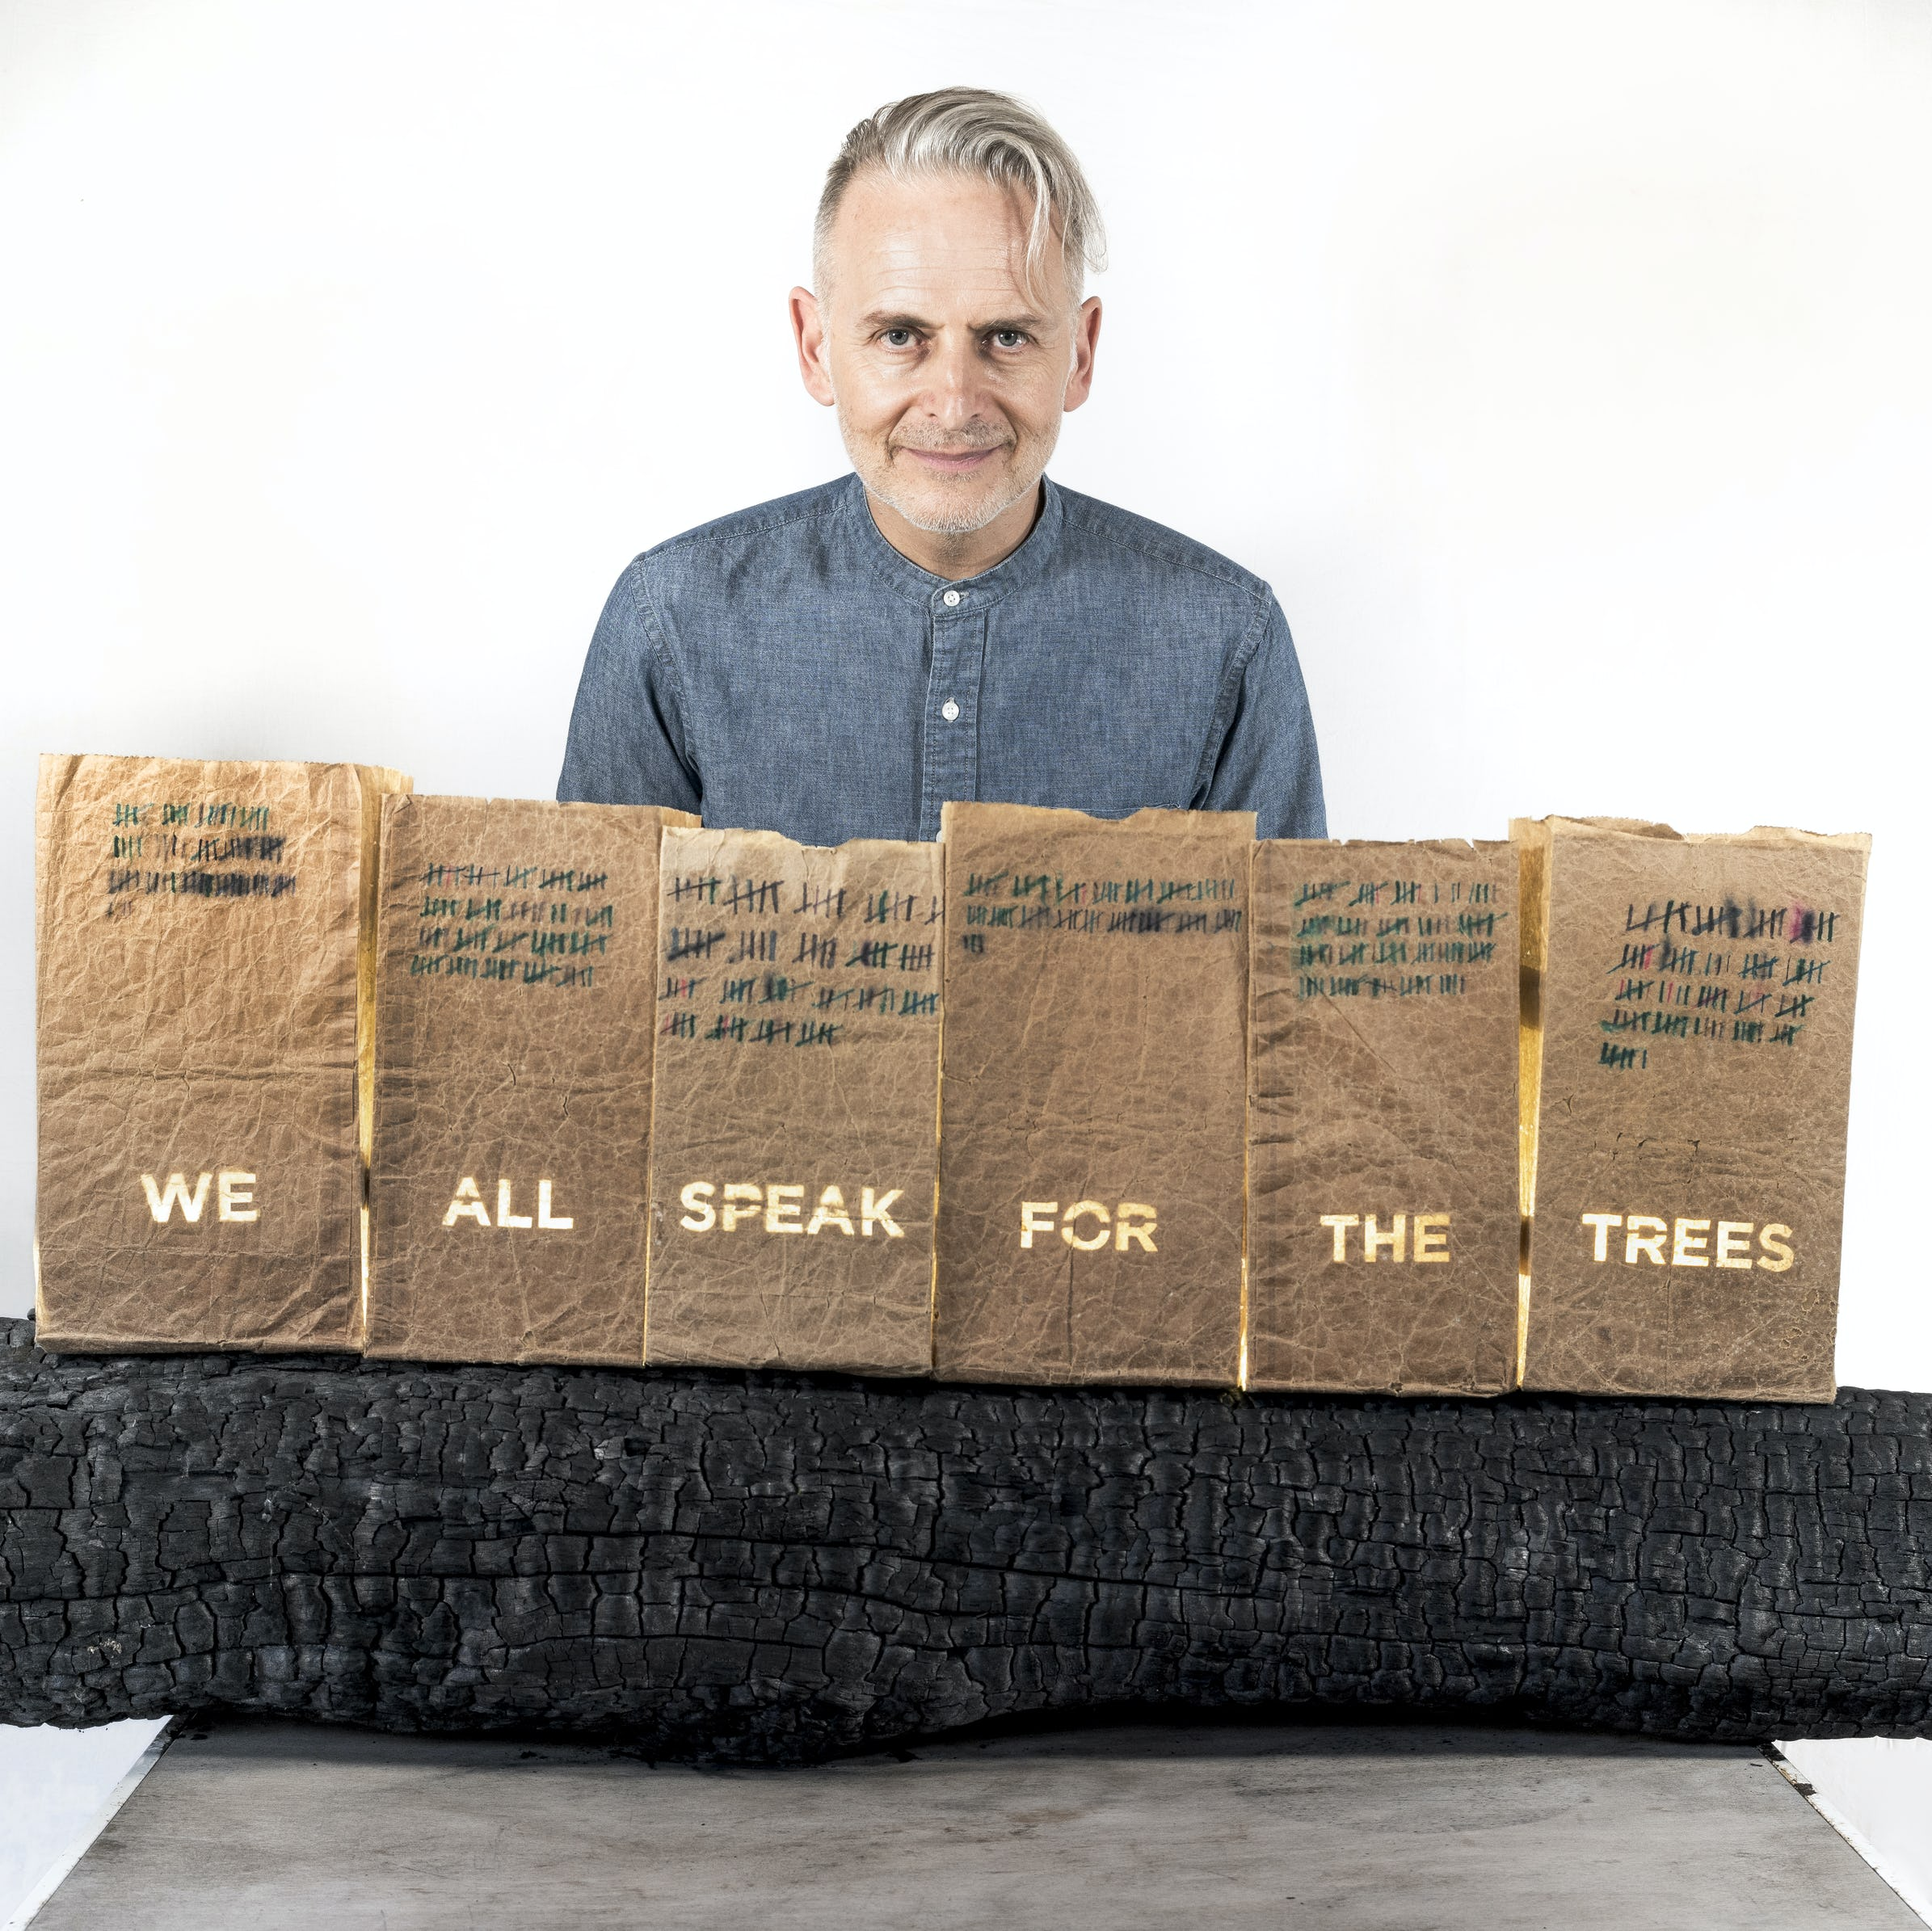 'We All Speak for the Trees' photographed by Alexis Destoop